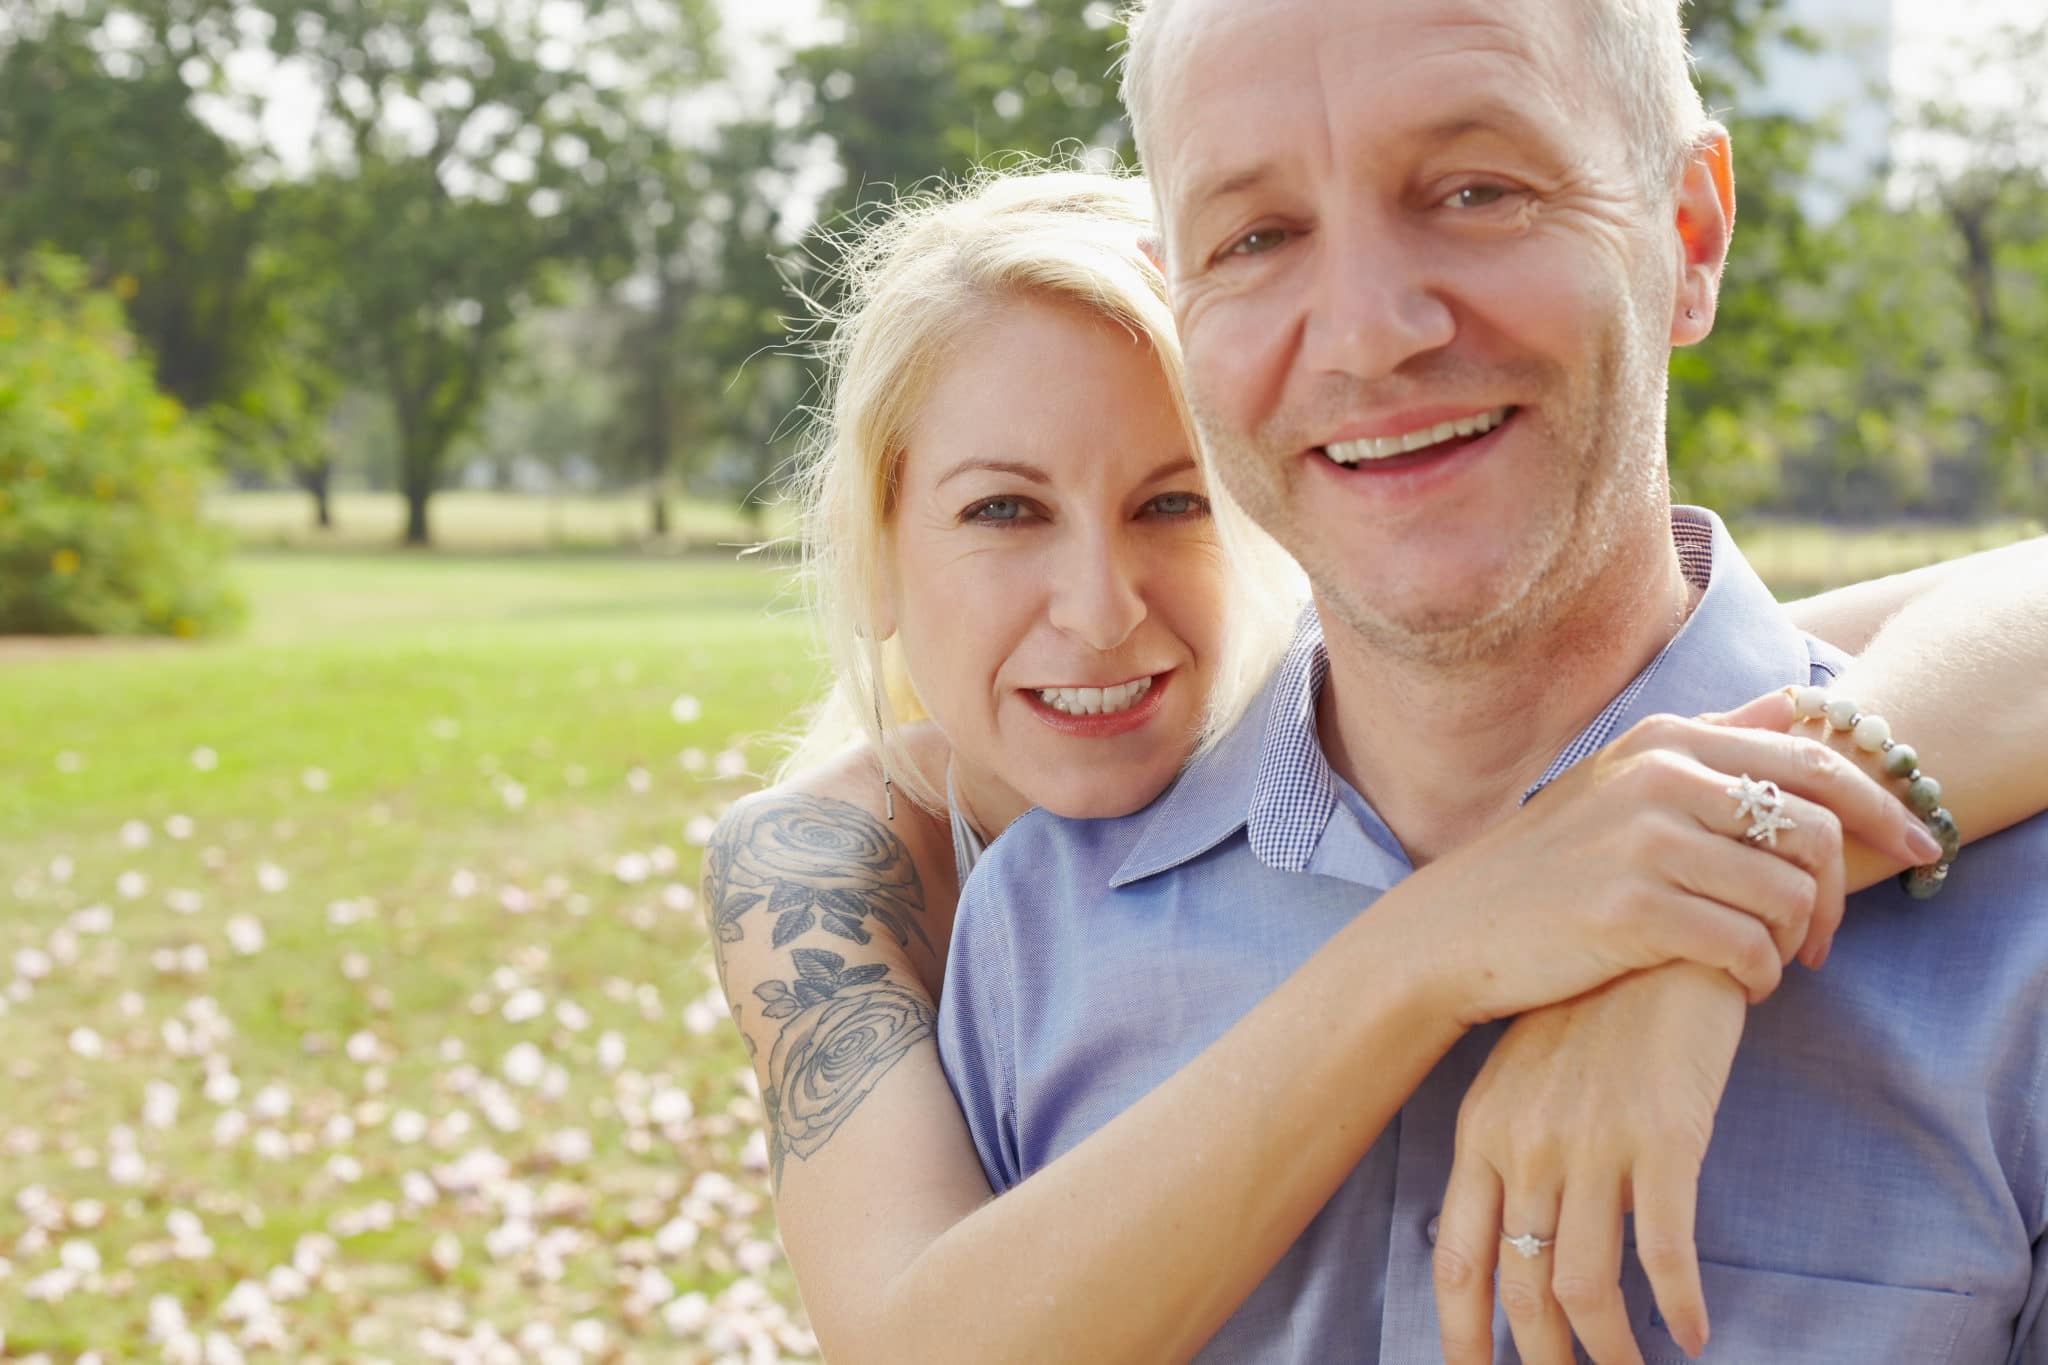 Online dating in your fifties